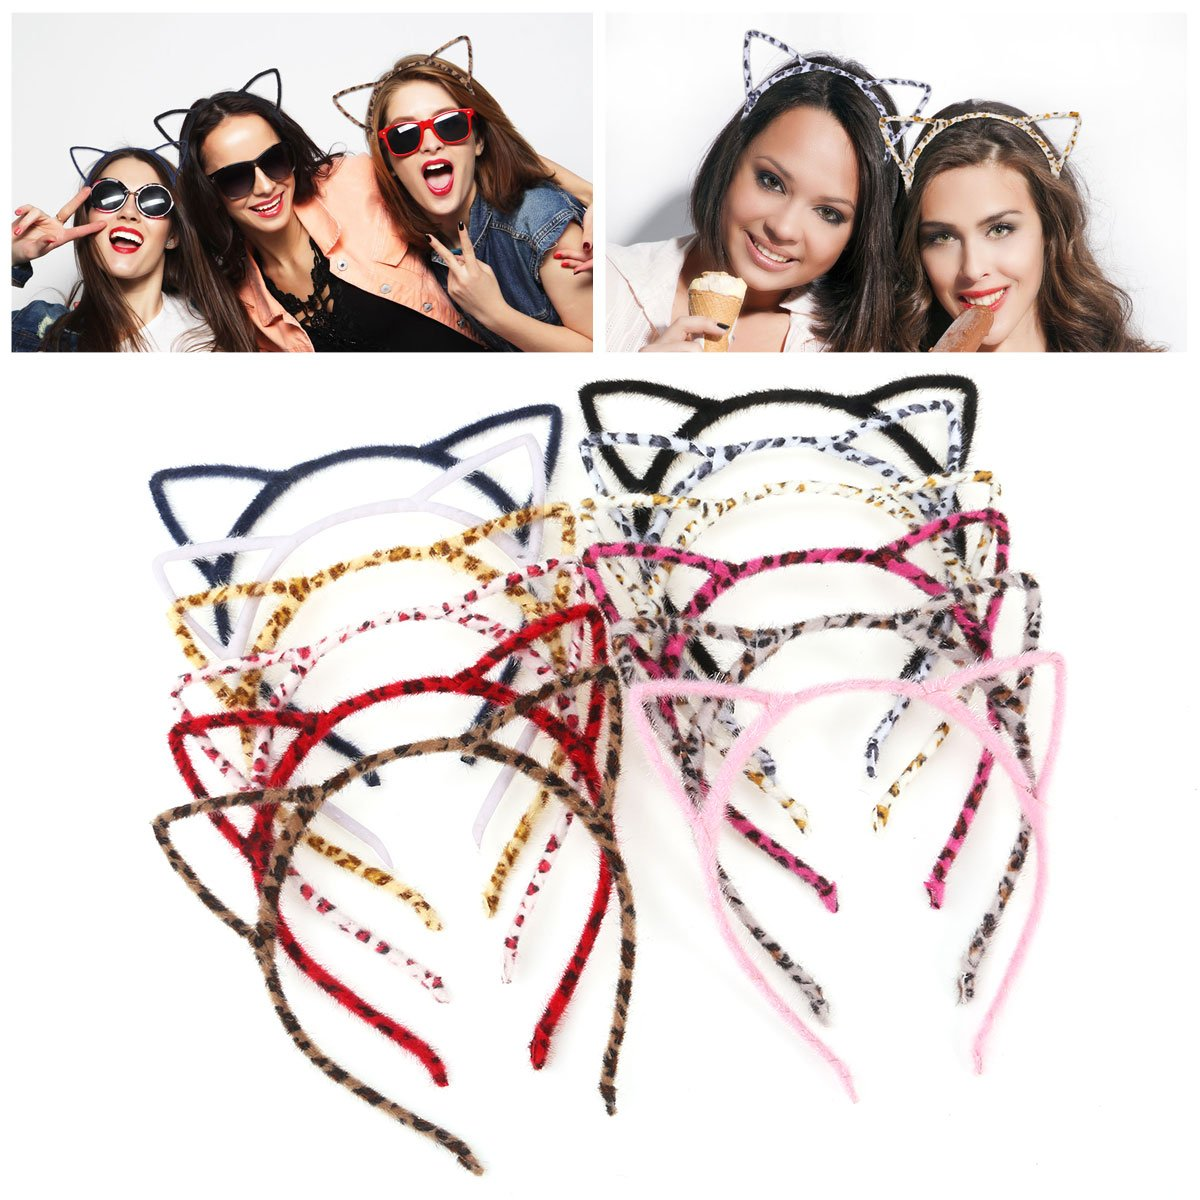 Unomor Cat Ears Hair Headband Fluffy Hair Hoop for Party and Daily Accessories, 12 Pieces with 12 Colors by Unomor (Image #1)